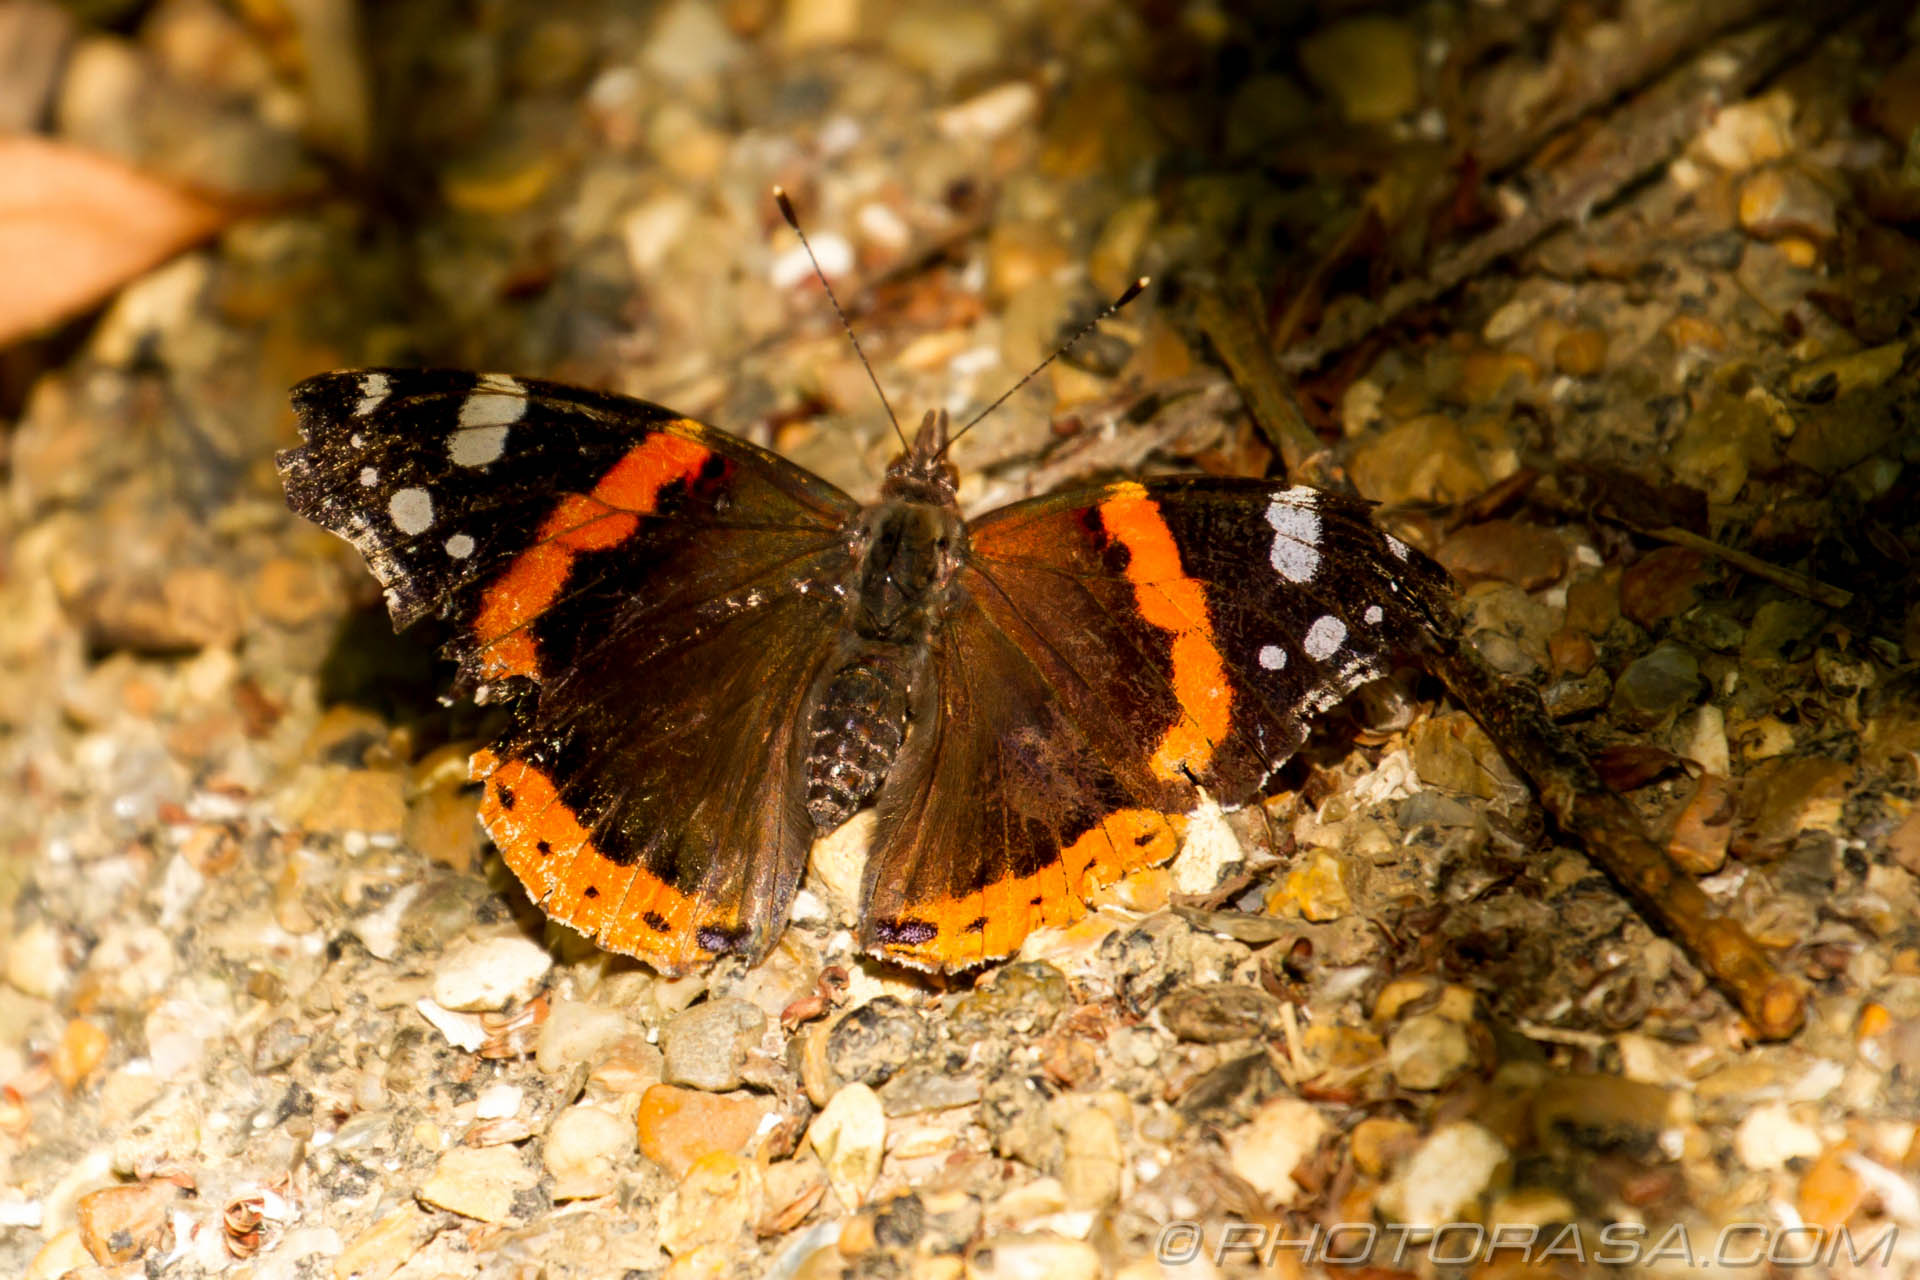 http://photorasa.com/red-admiral/tatty-red-admiral-in-dappled-light/